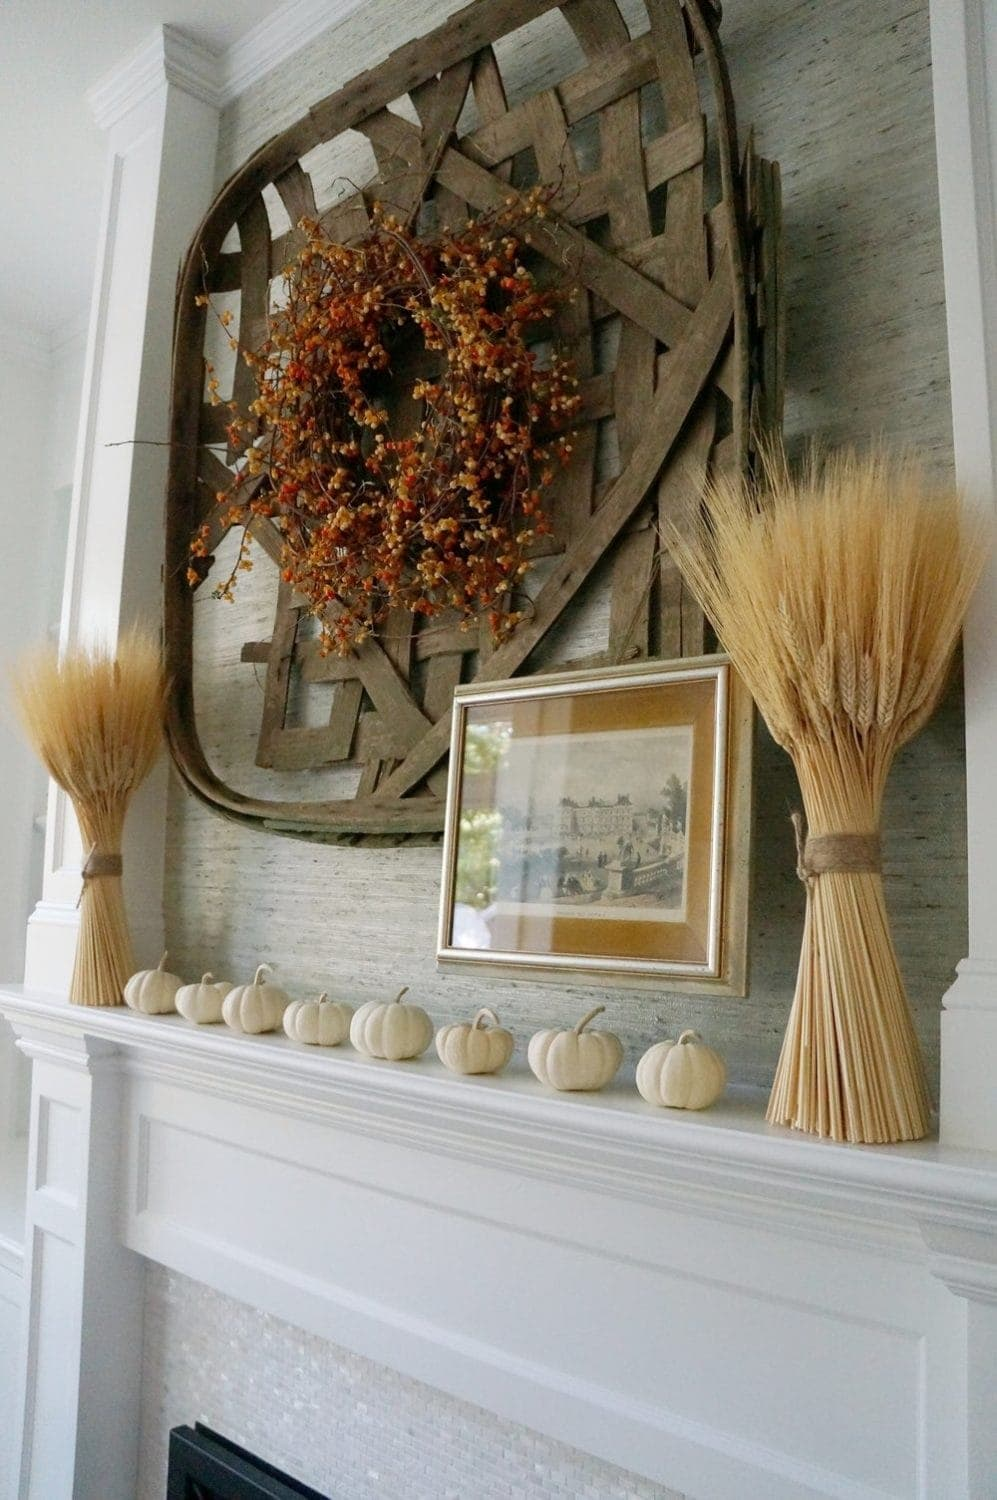 Fall mantel ideas using tobacco baskets, wreaths and dried wheat bundles